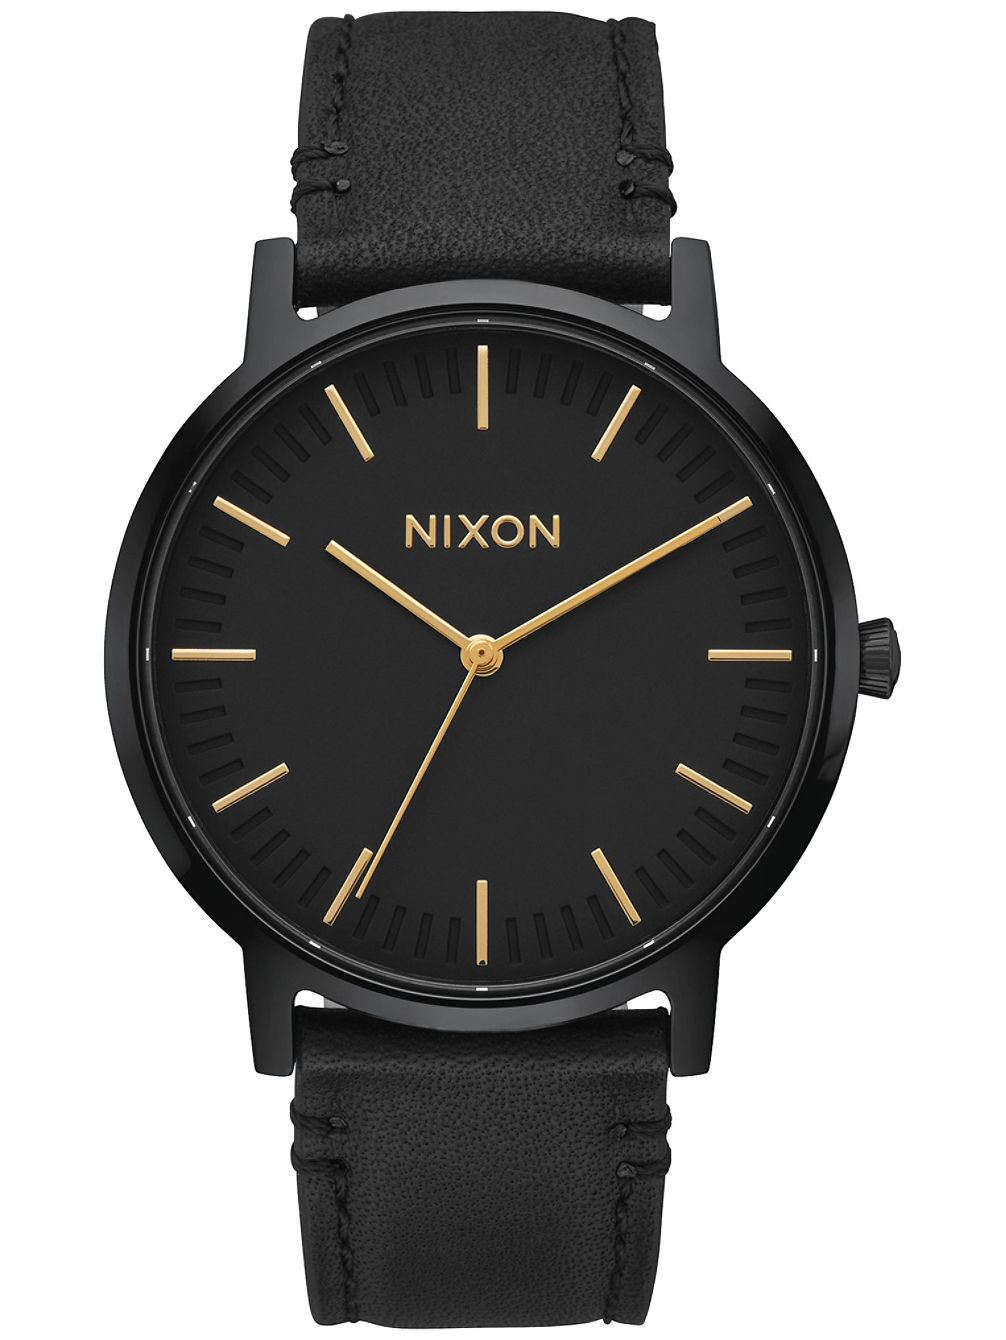 The Porter Leather Montre